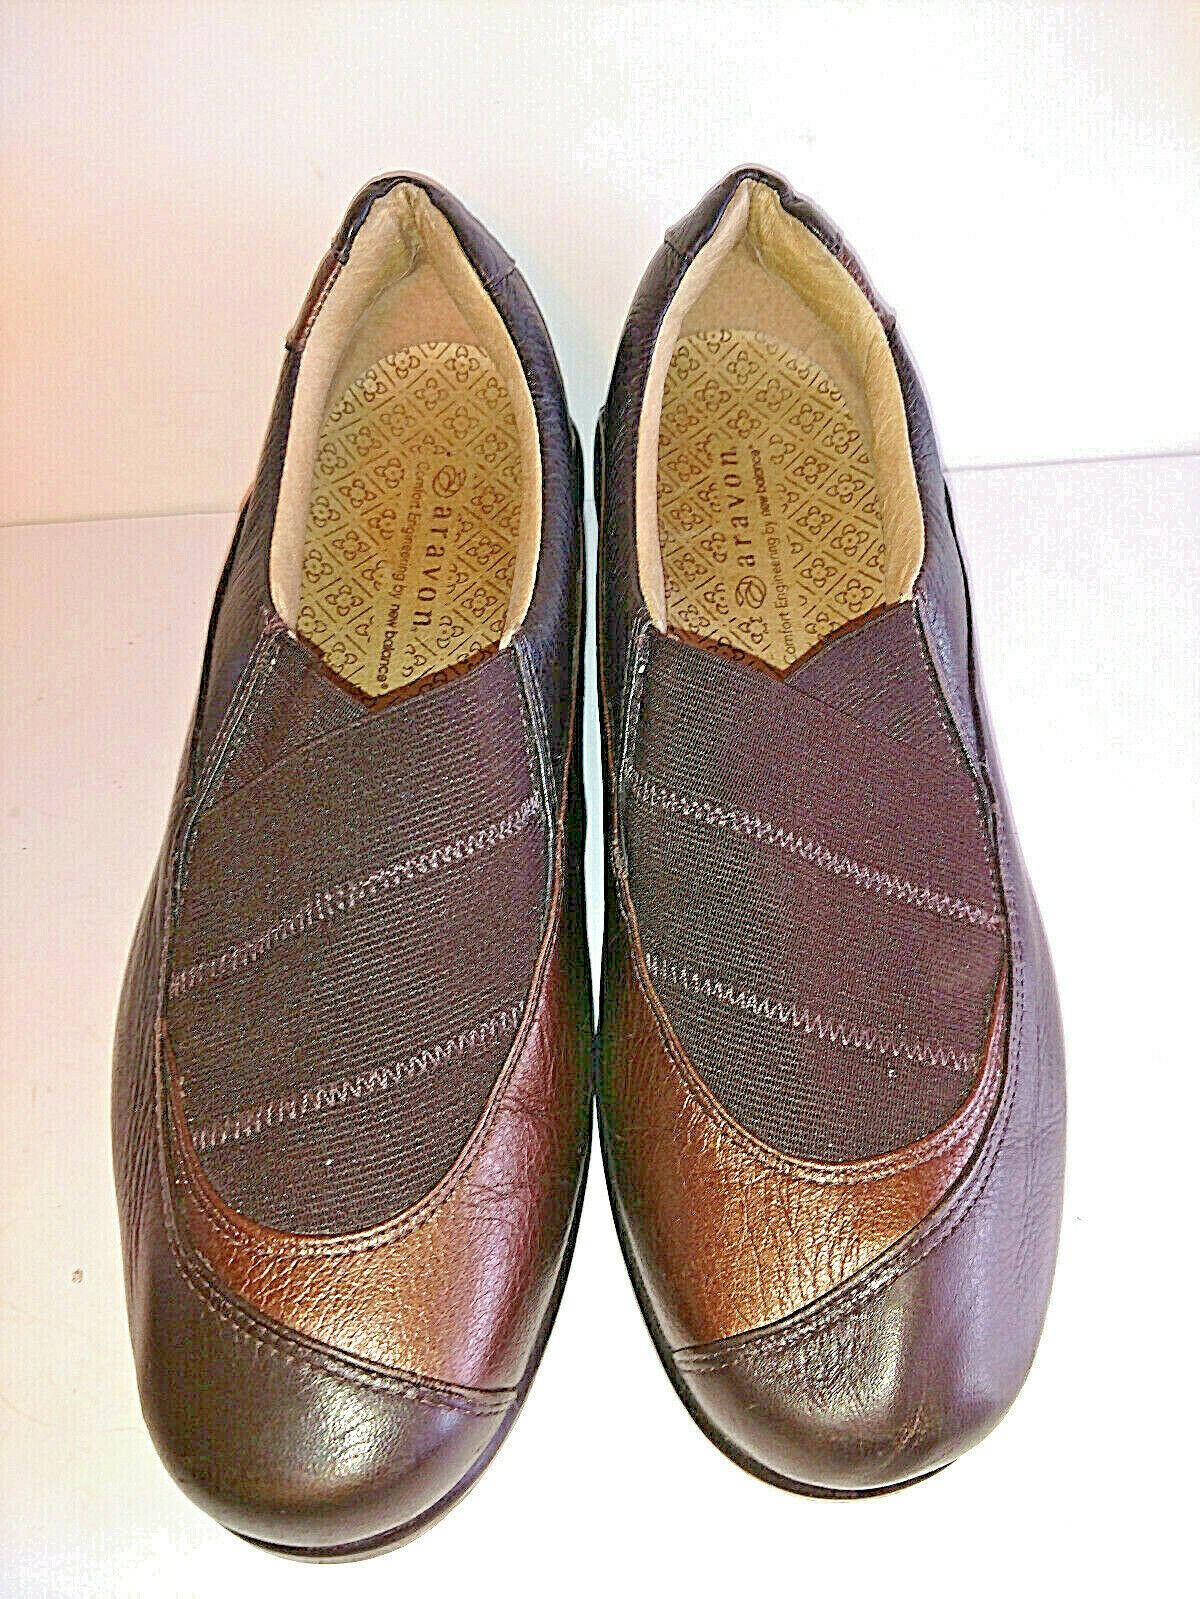 ARAVON by NEW BALANCE Womens shoes 8.5M 8.5 M Slip On Loafers Brown Leather